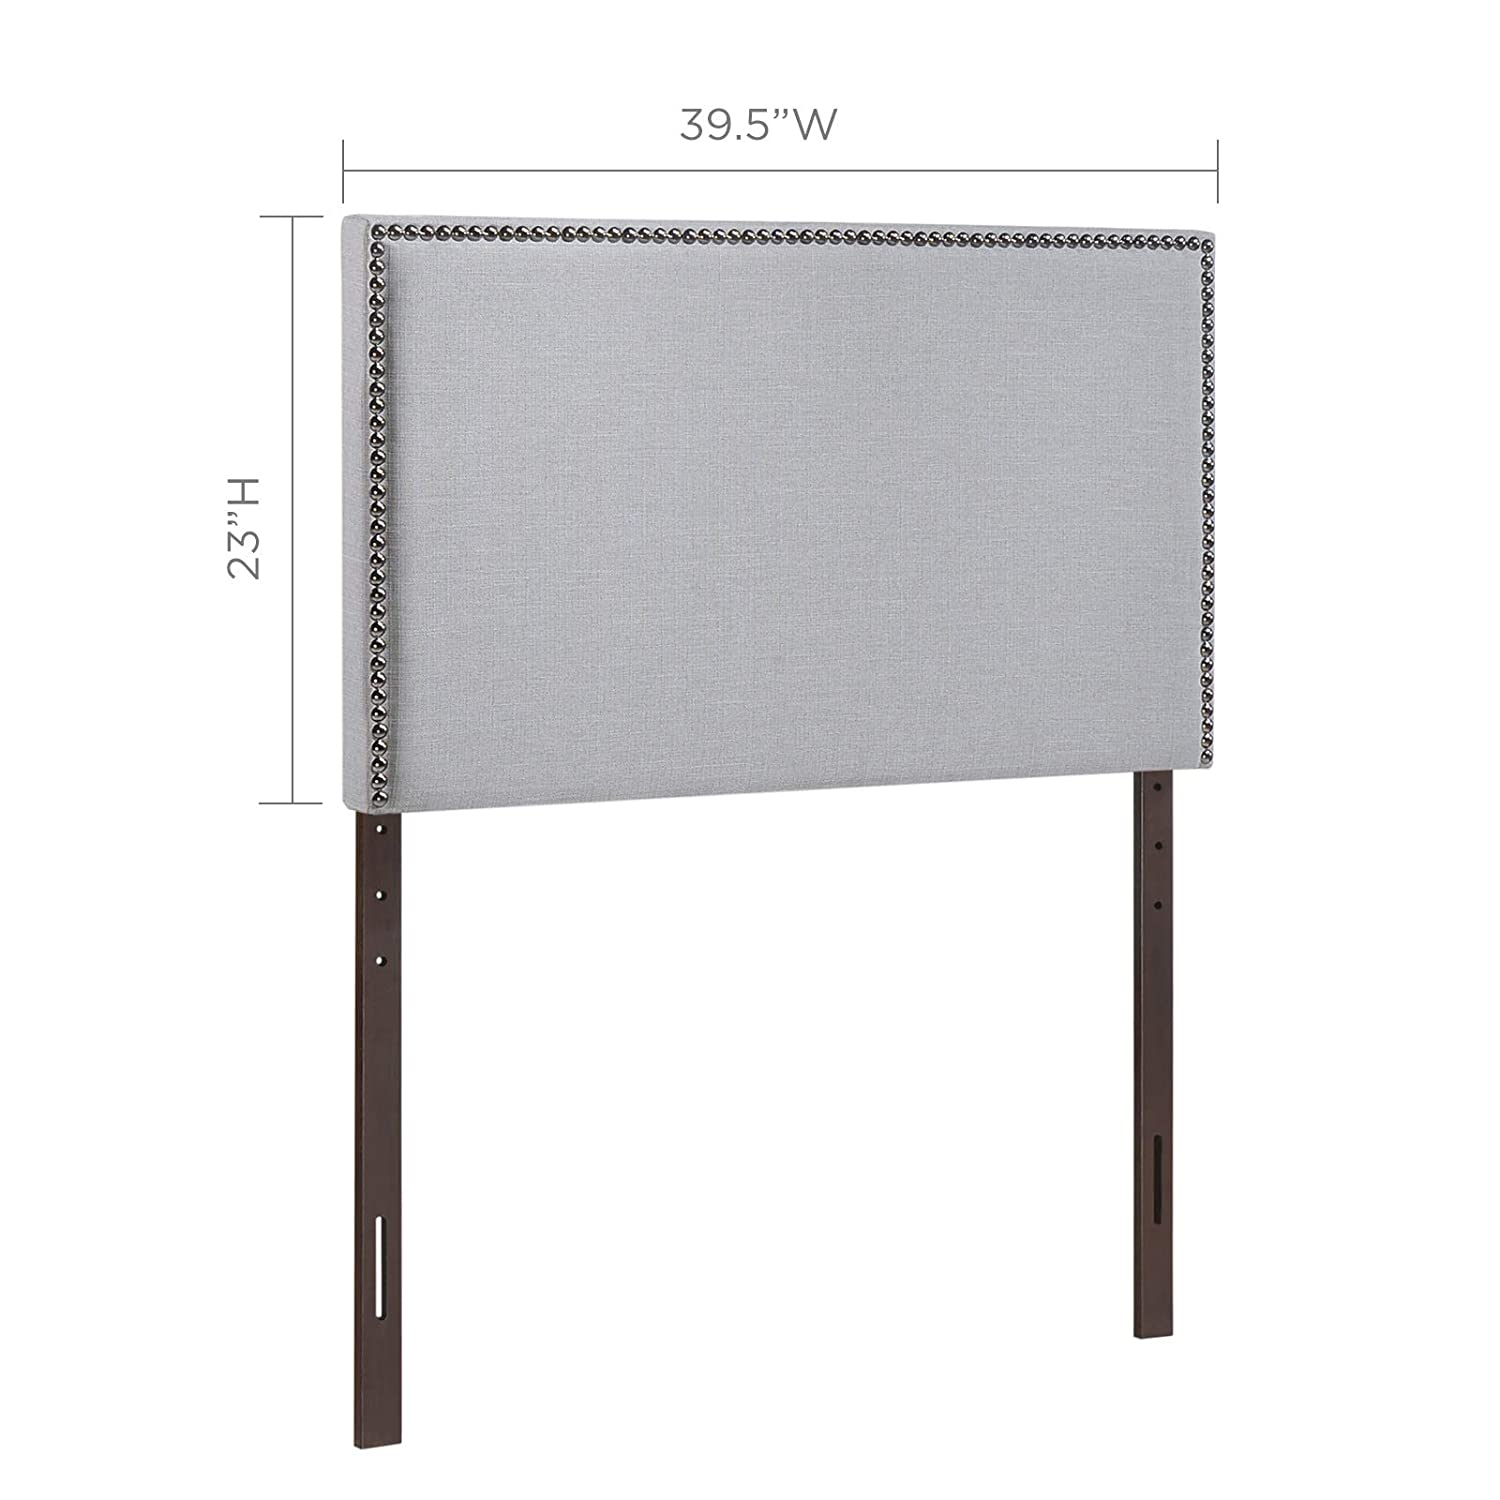 Amazon.com: Cabecero doble regional en color gris: Kitchen ...